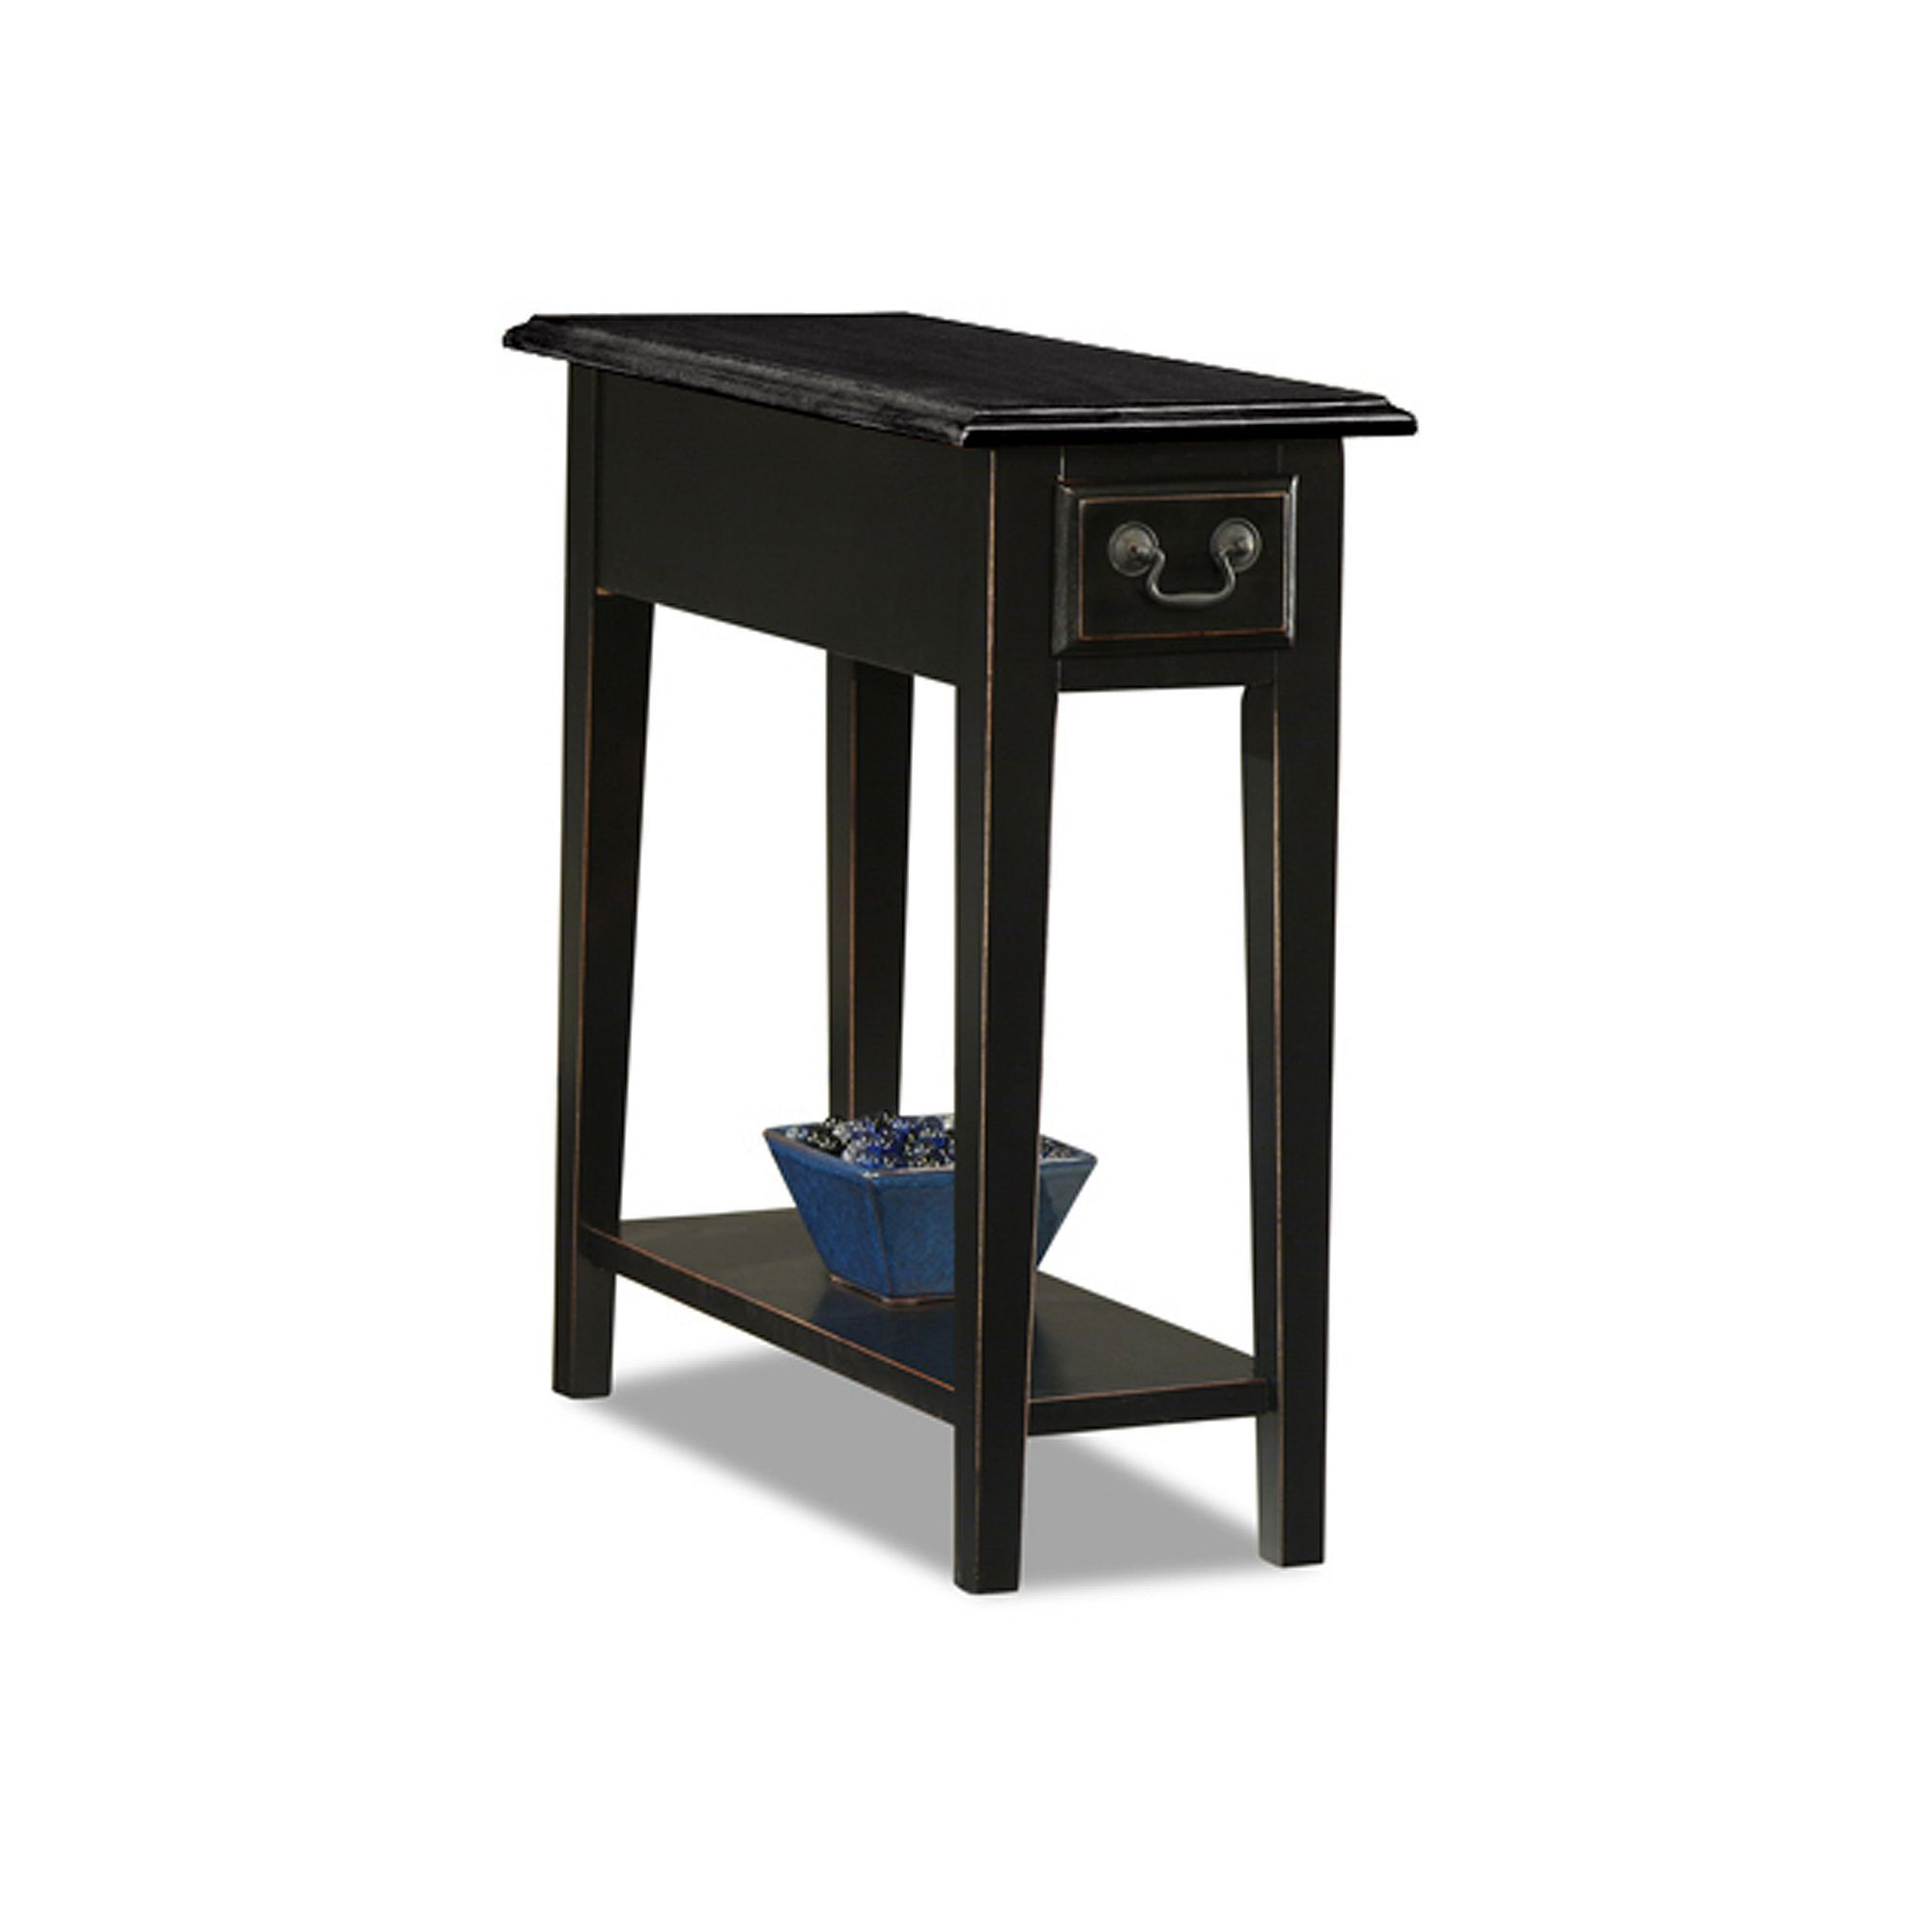 Leick Furniture Chairside Table Chair side table, Small